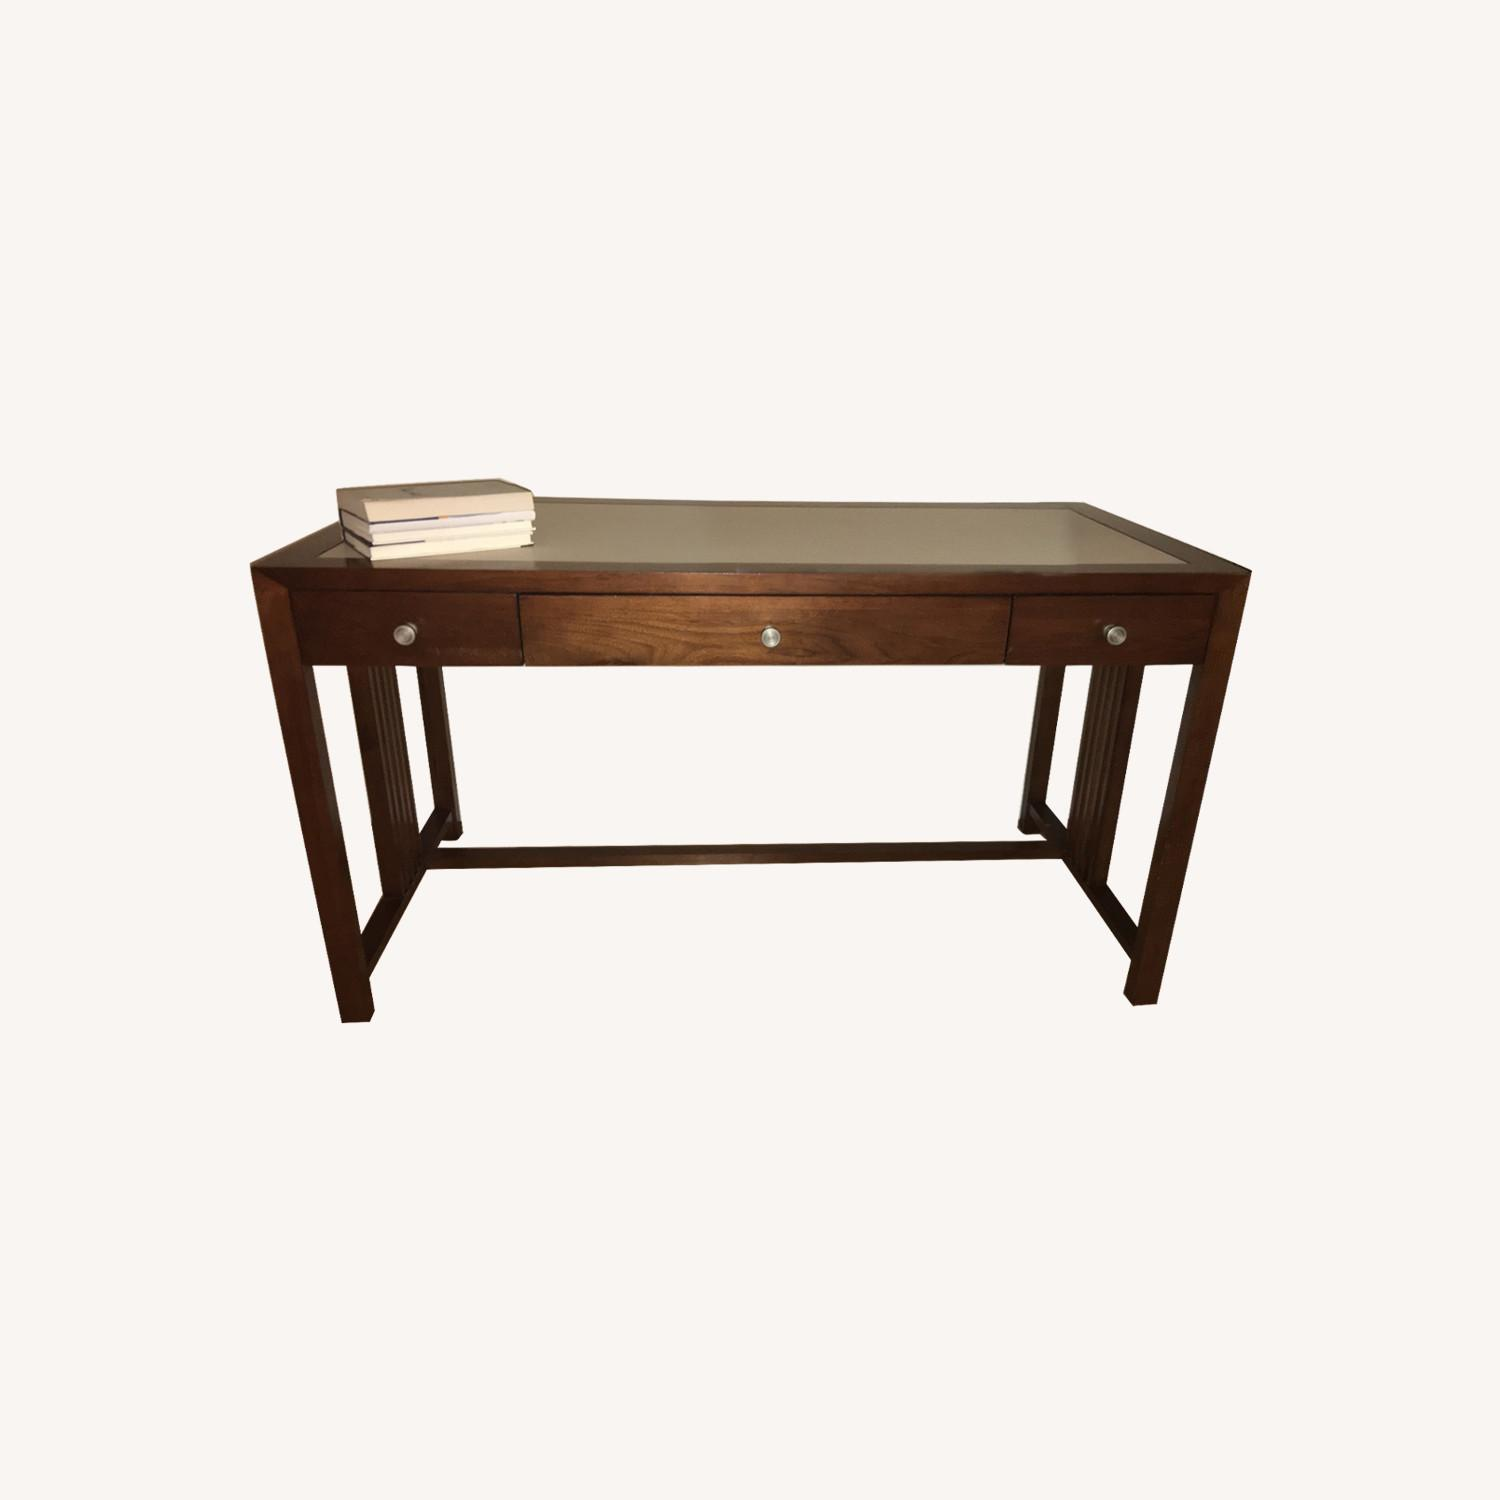 Crate & Barrel Adler Desk - image-0